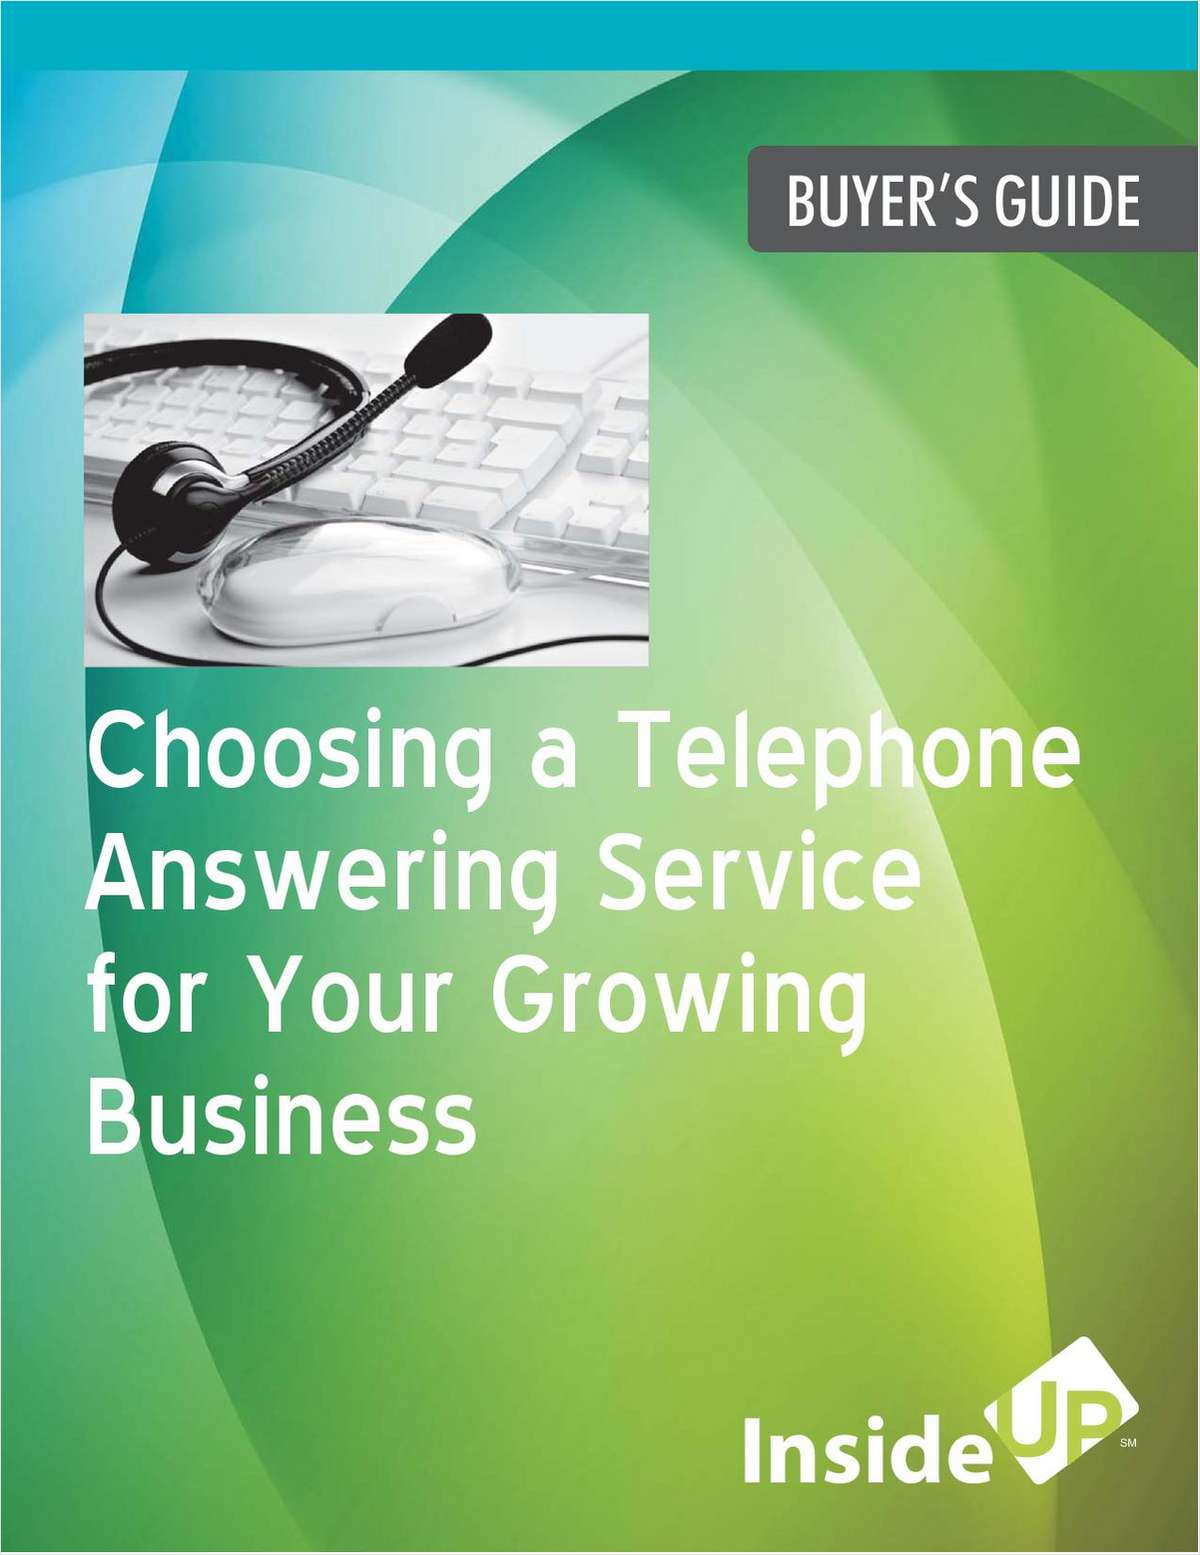 Choosing a Telephone Answering Service for Your Growing Business